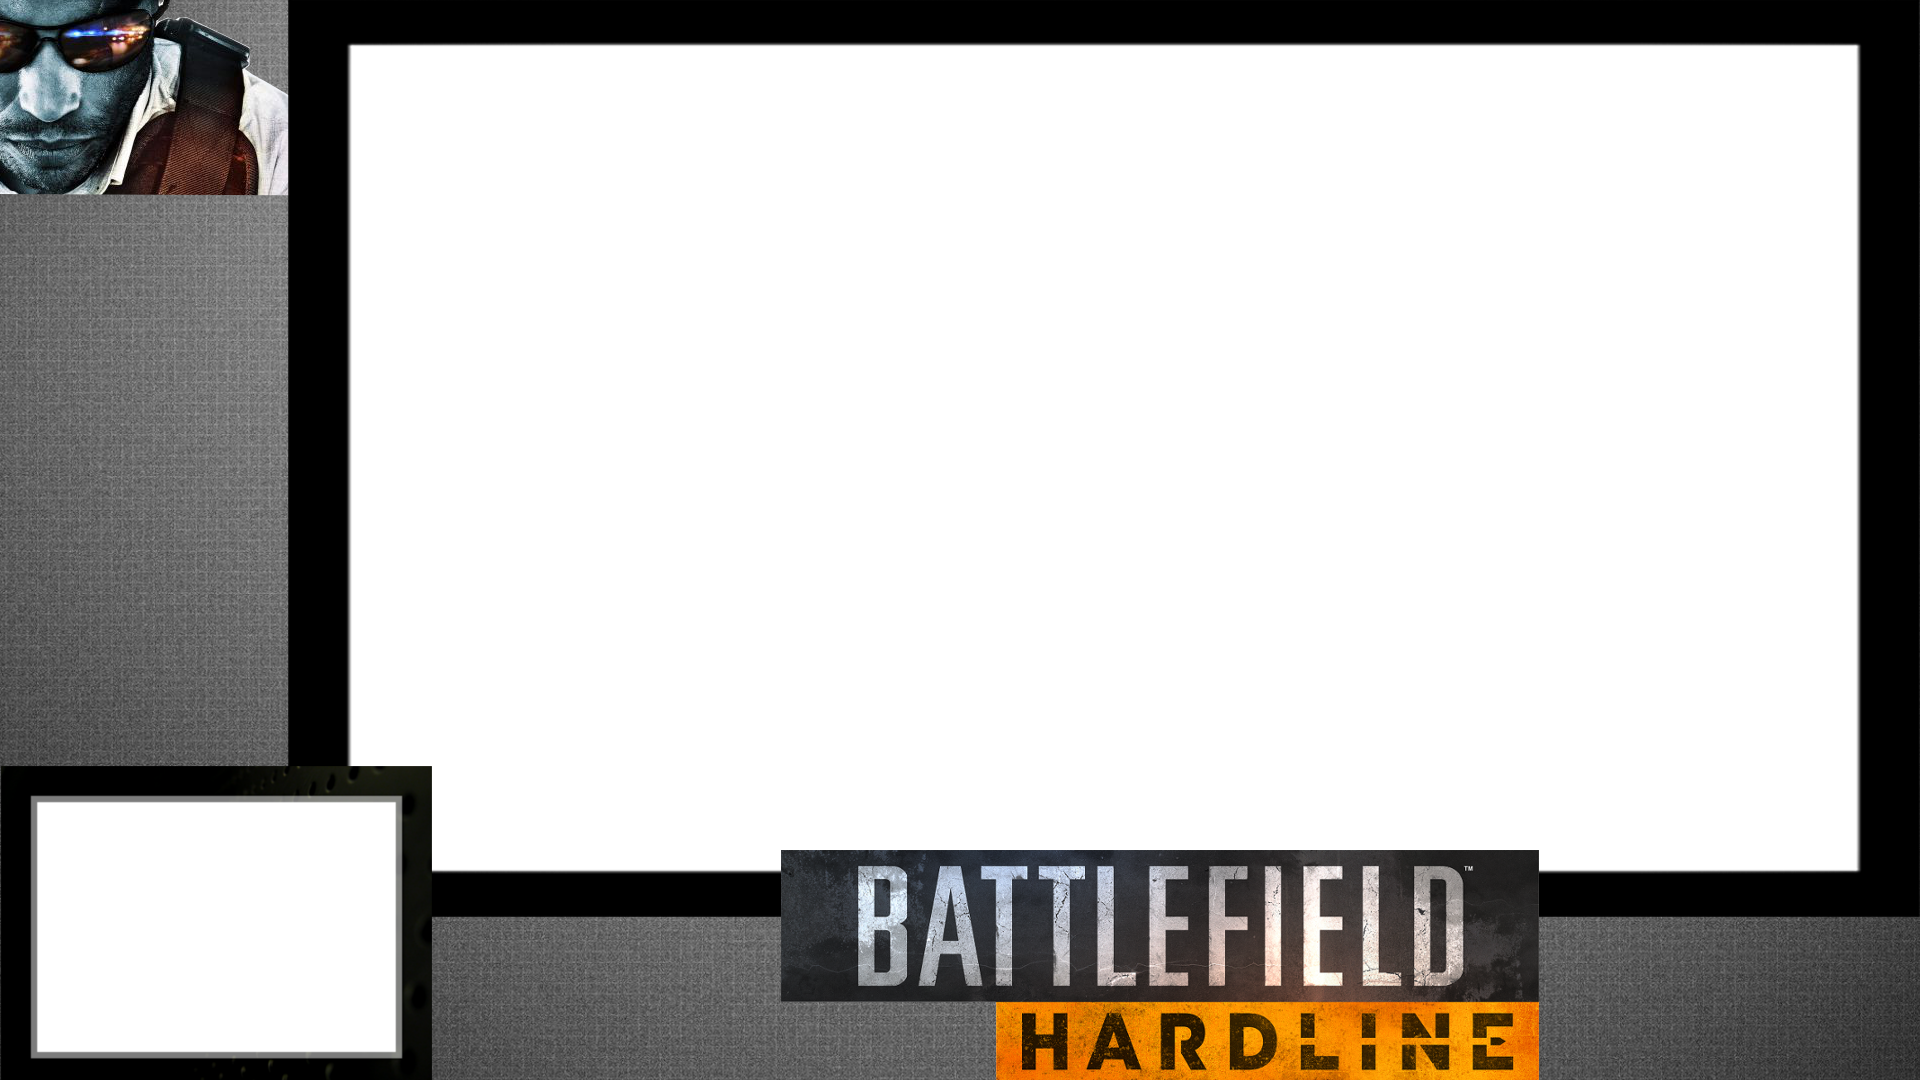 battle feild hardline twitch overlay